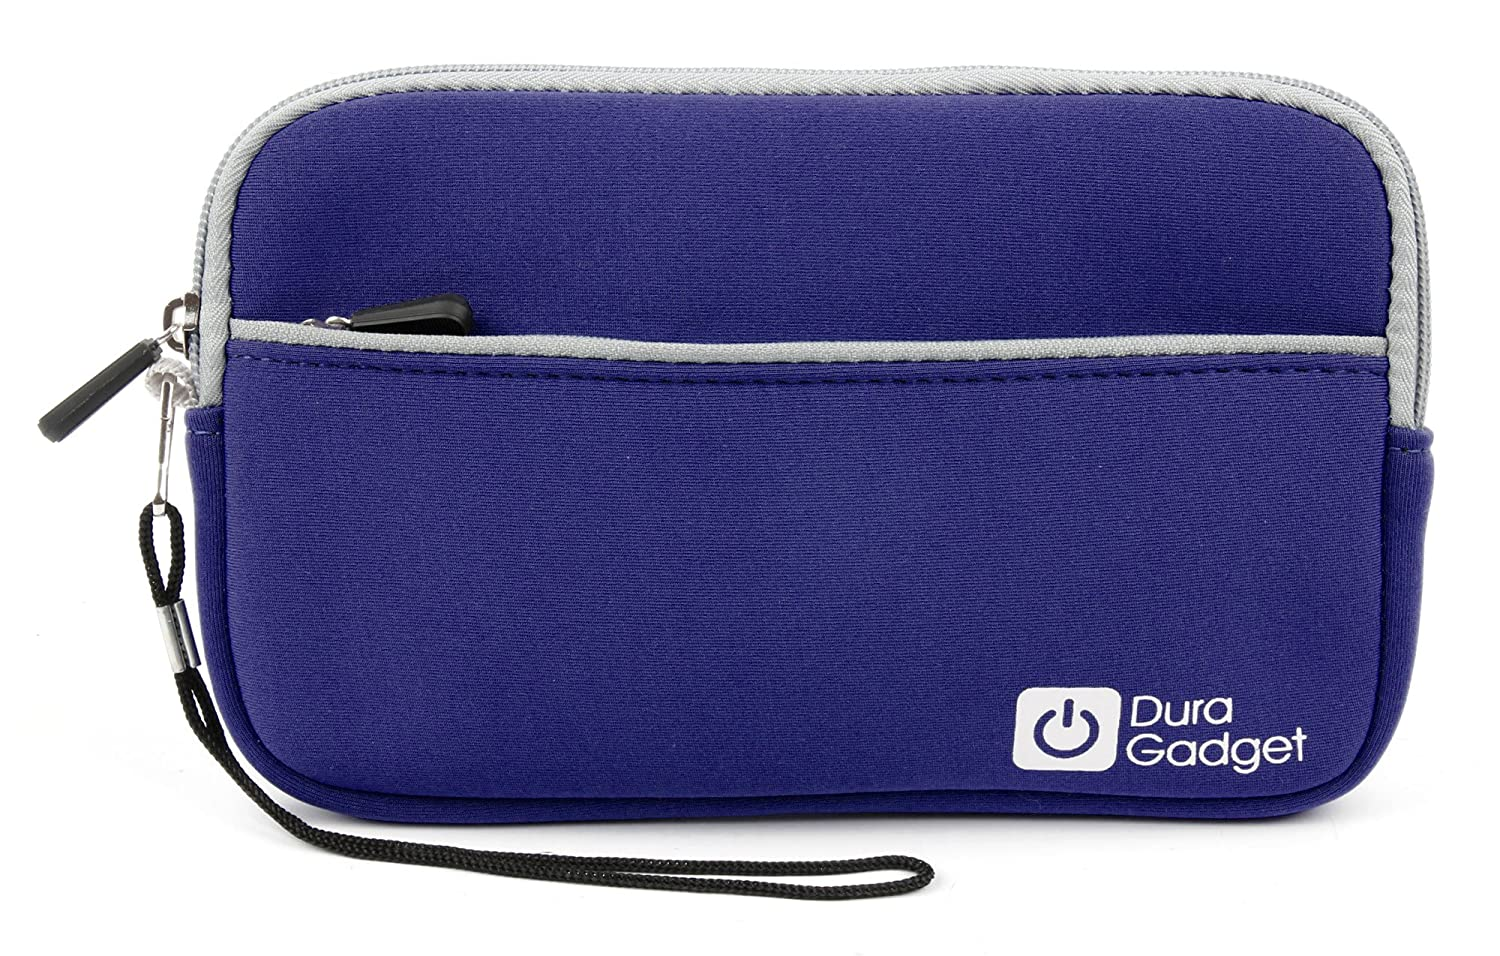 DURAGADGET Blue 7' Water & Scratch-Resistant Neoprene Case - Suitable for The SEGA Ultimate | Master Portable Game Player